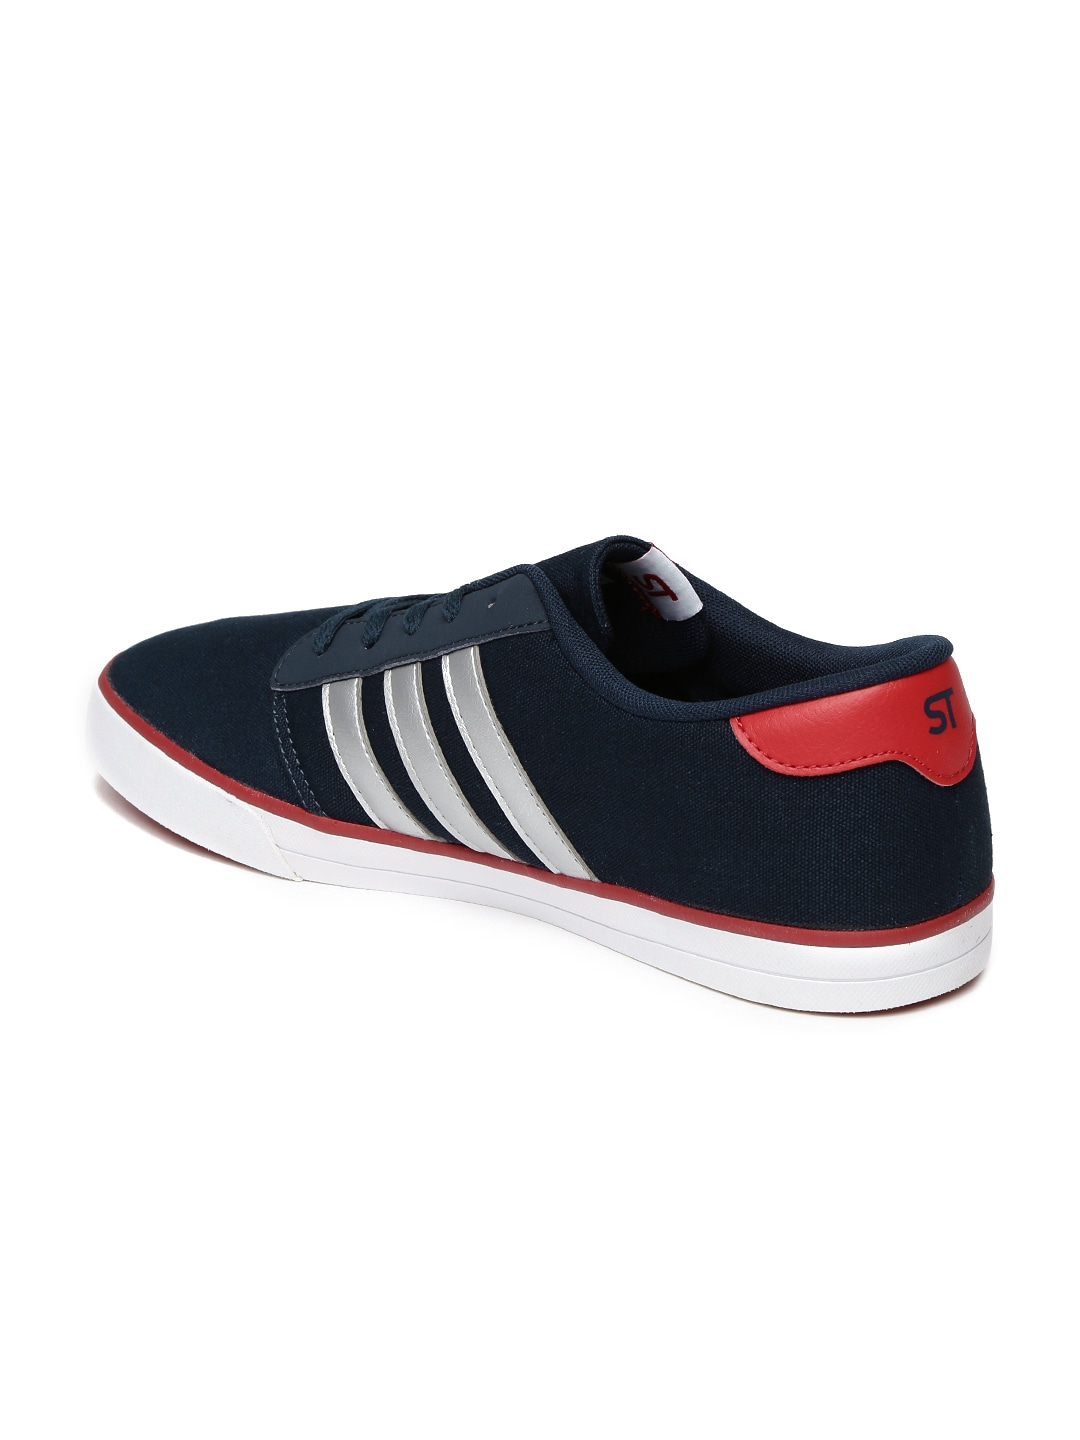 best website c6704 2bff6 ... adidas neo leather gold red ...